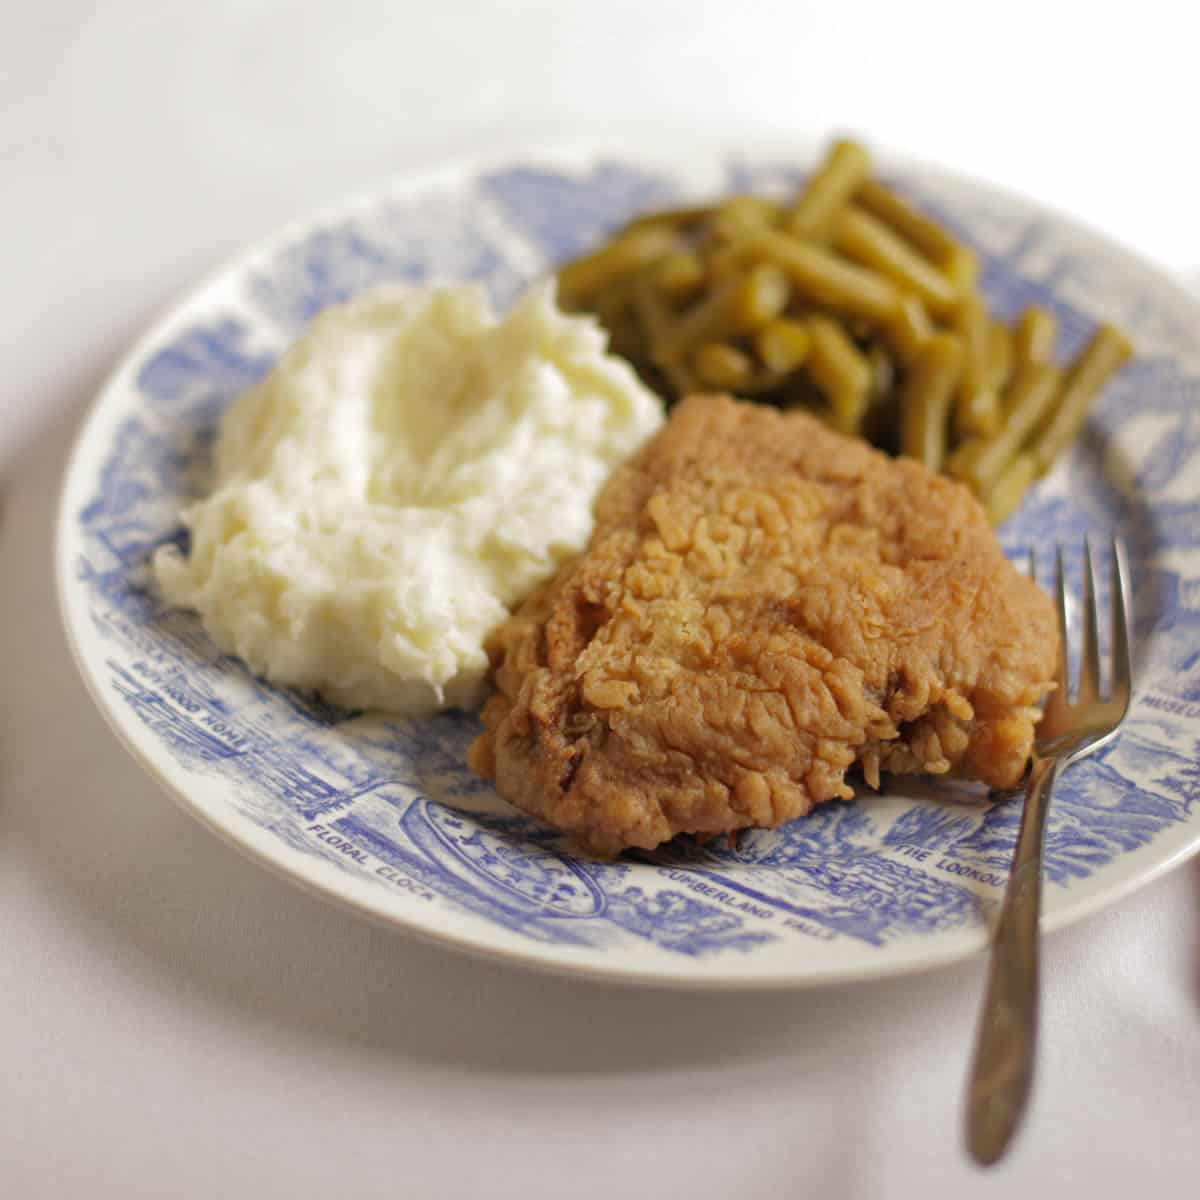 Chicken fried steak on a plate next to mashed potatoes and green beans.